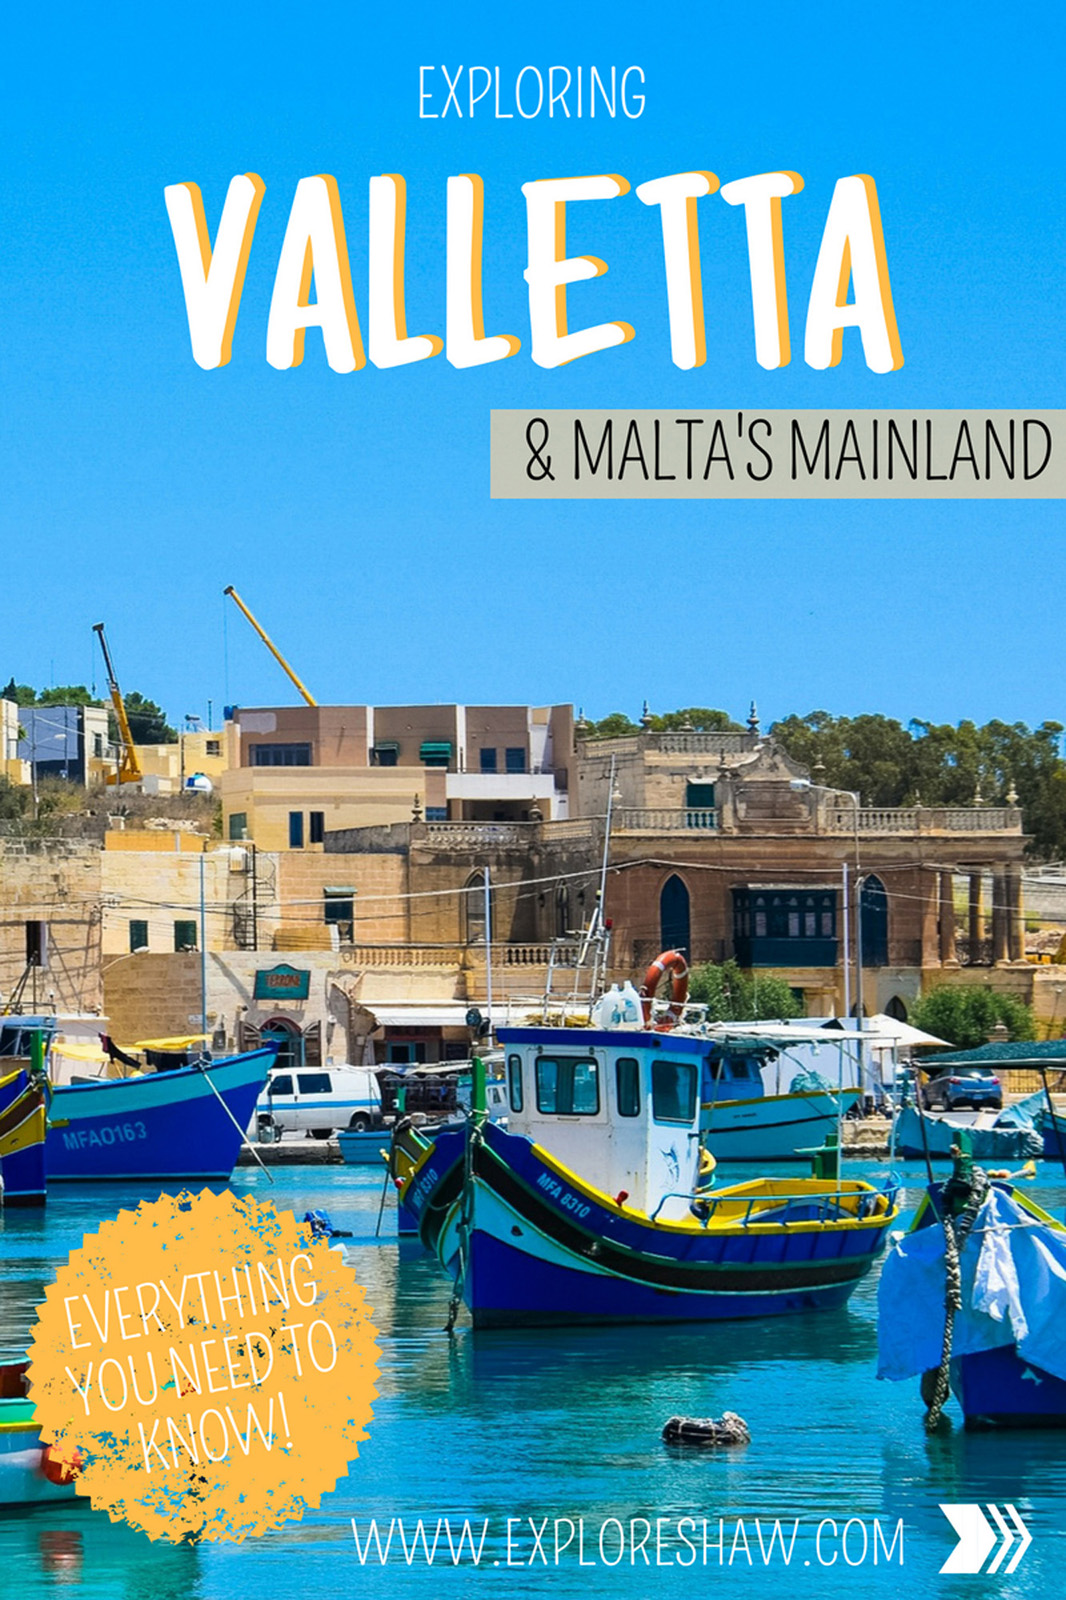 EXPLORING VALLETTA AND MALTA'S MAINLAND